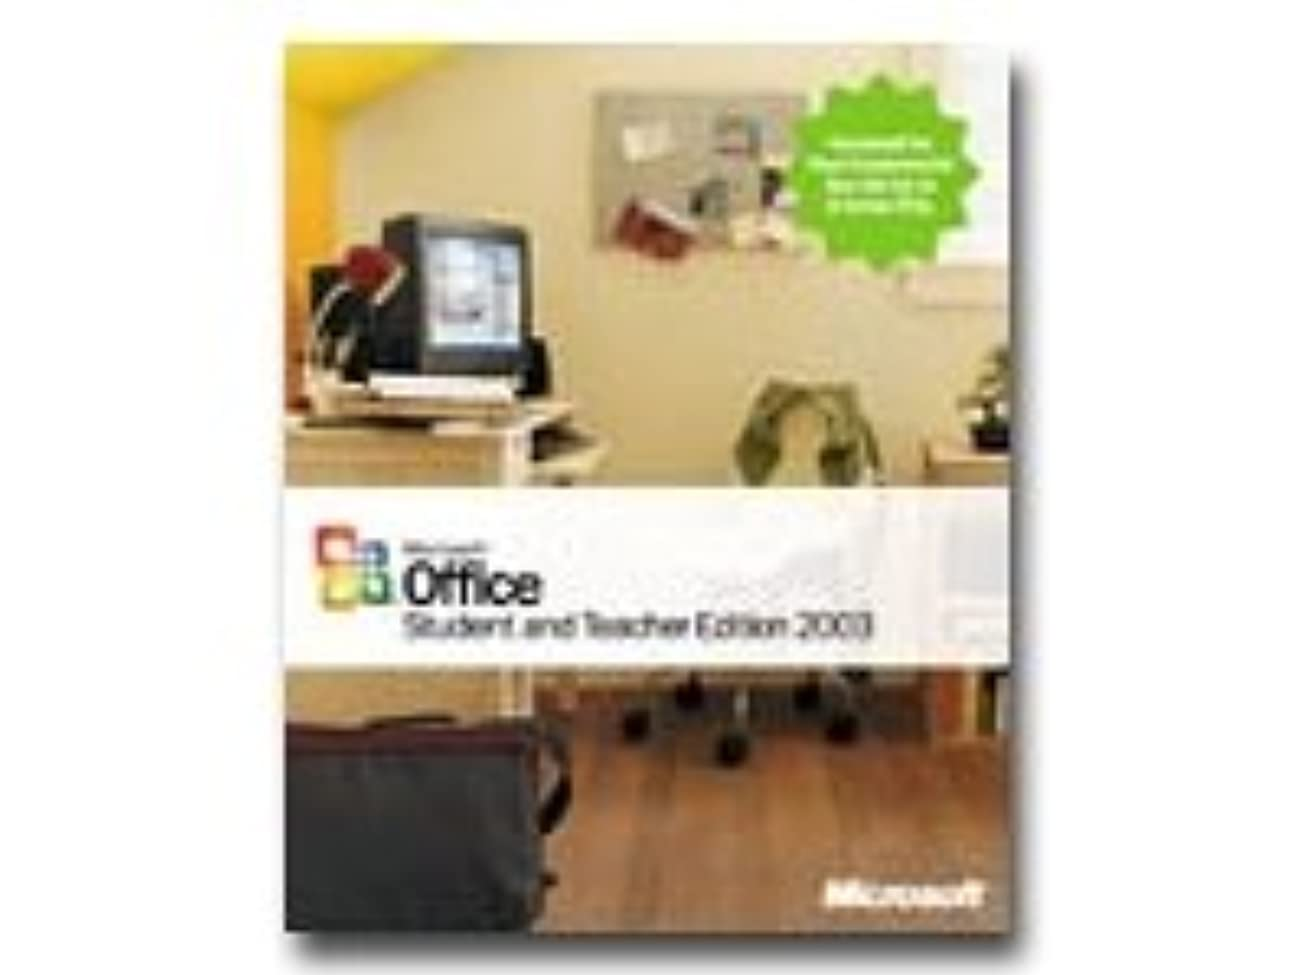 ムス一流批判的にMicrosoft Office Student & Teacher Edition 2003 English(英語版)